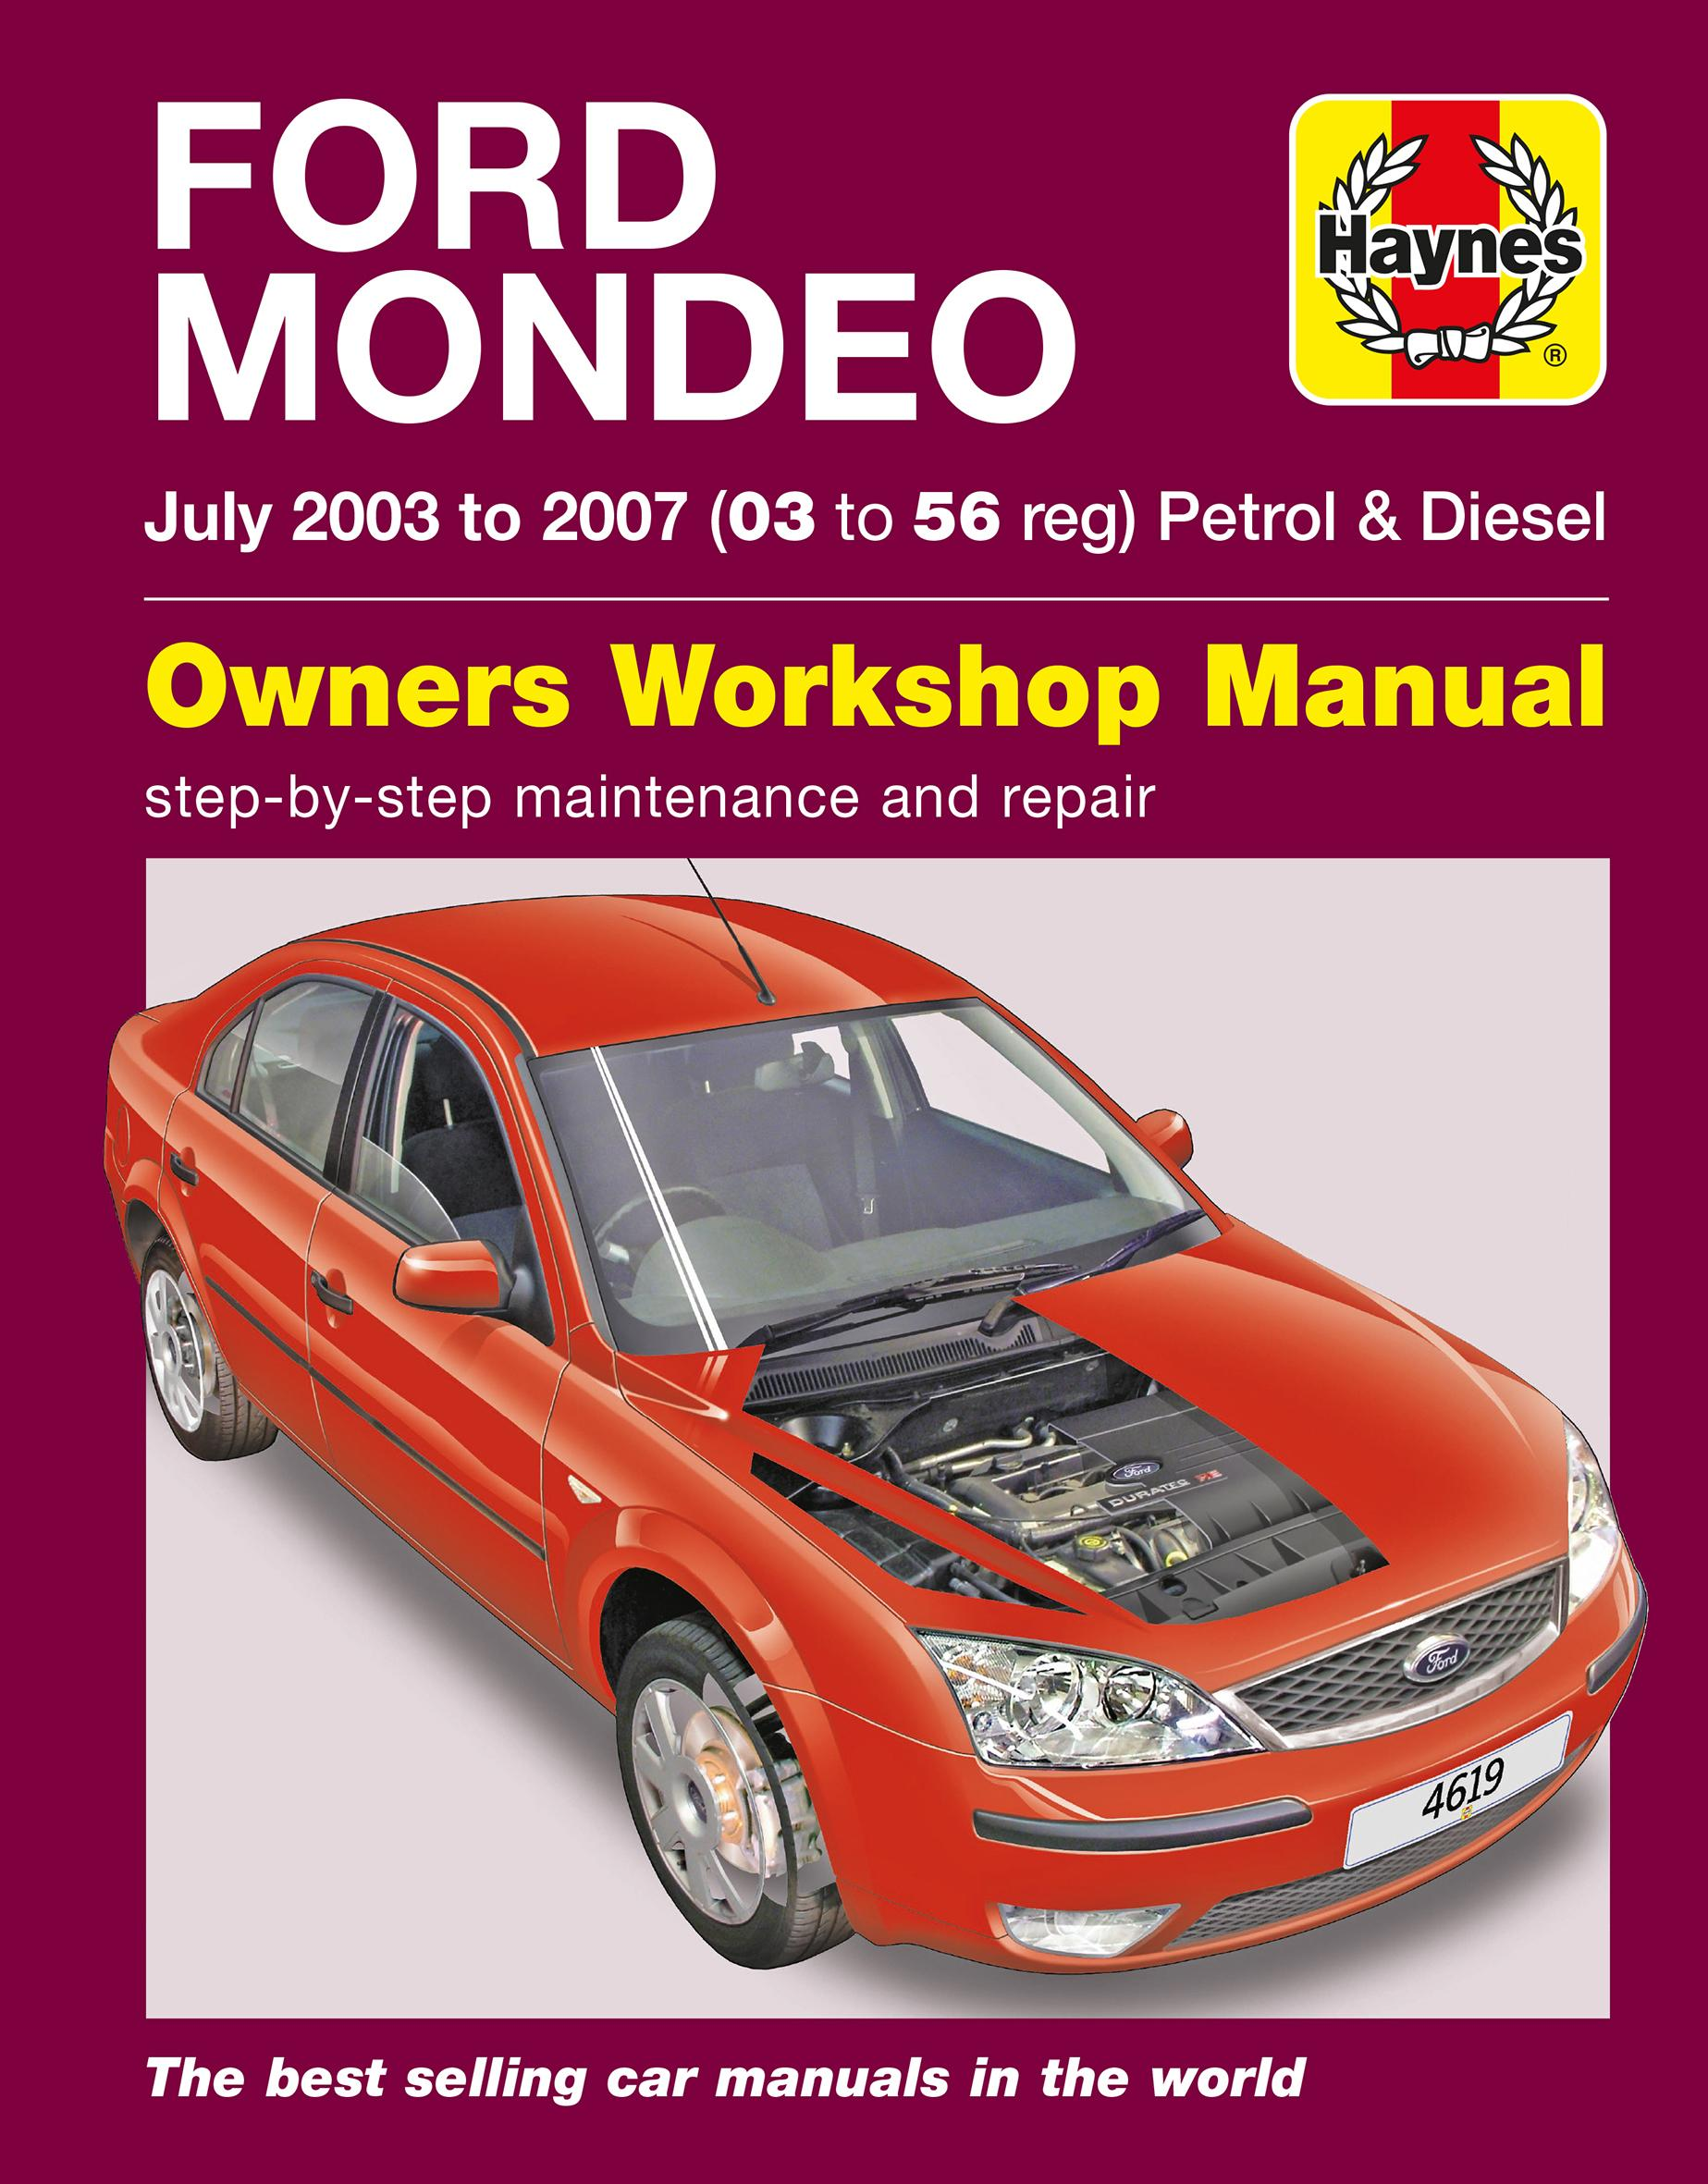 Ford Focus 07 Owners Manual Open Source User 2014 Mondeo Mark 3 U2022 Rh Dramatic Varieties Com